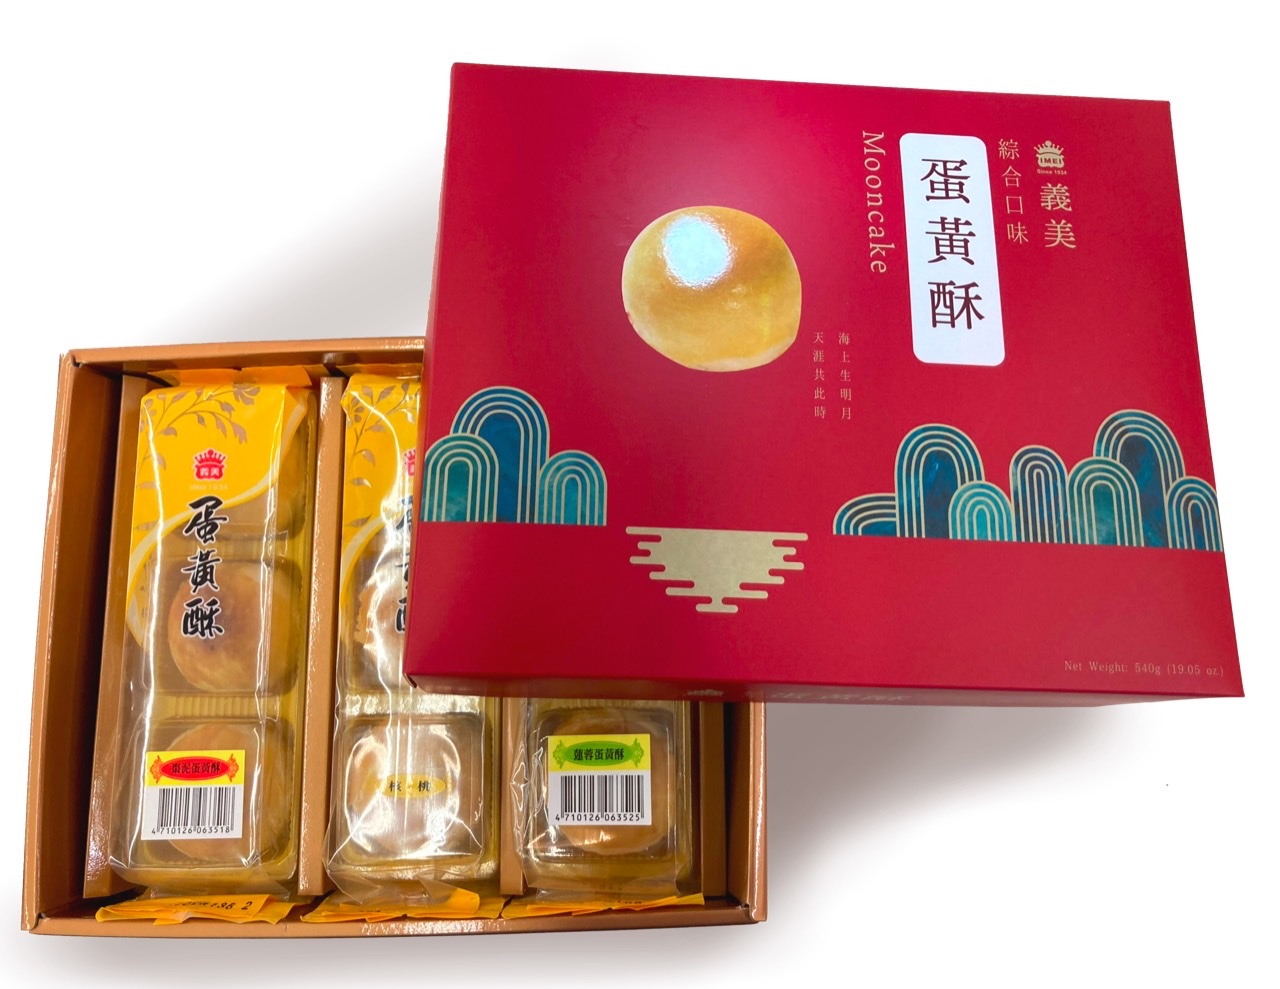 Mooncake like Pastry With Juju bean, Walnut, and White Lotus Paste Filled Cakes Variety Pack by IMEI